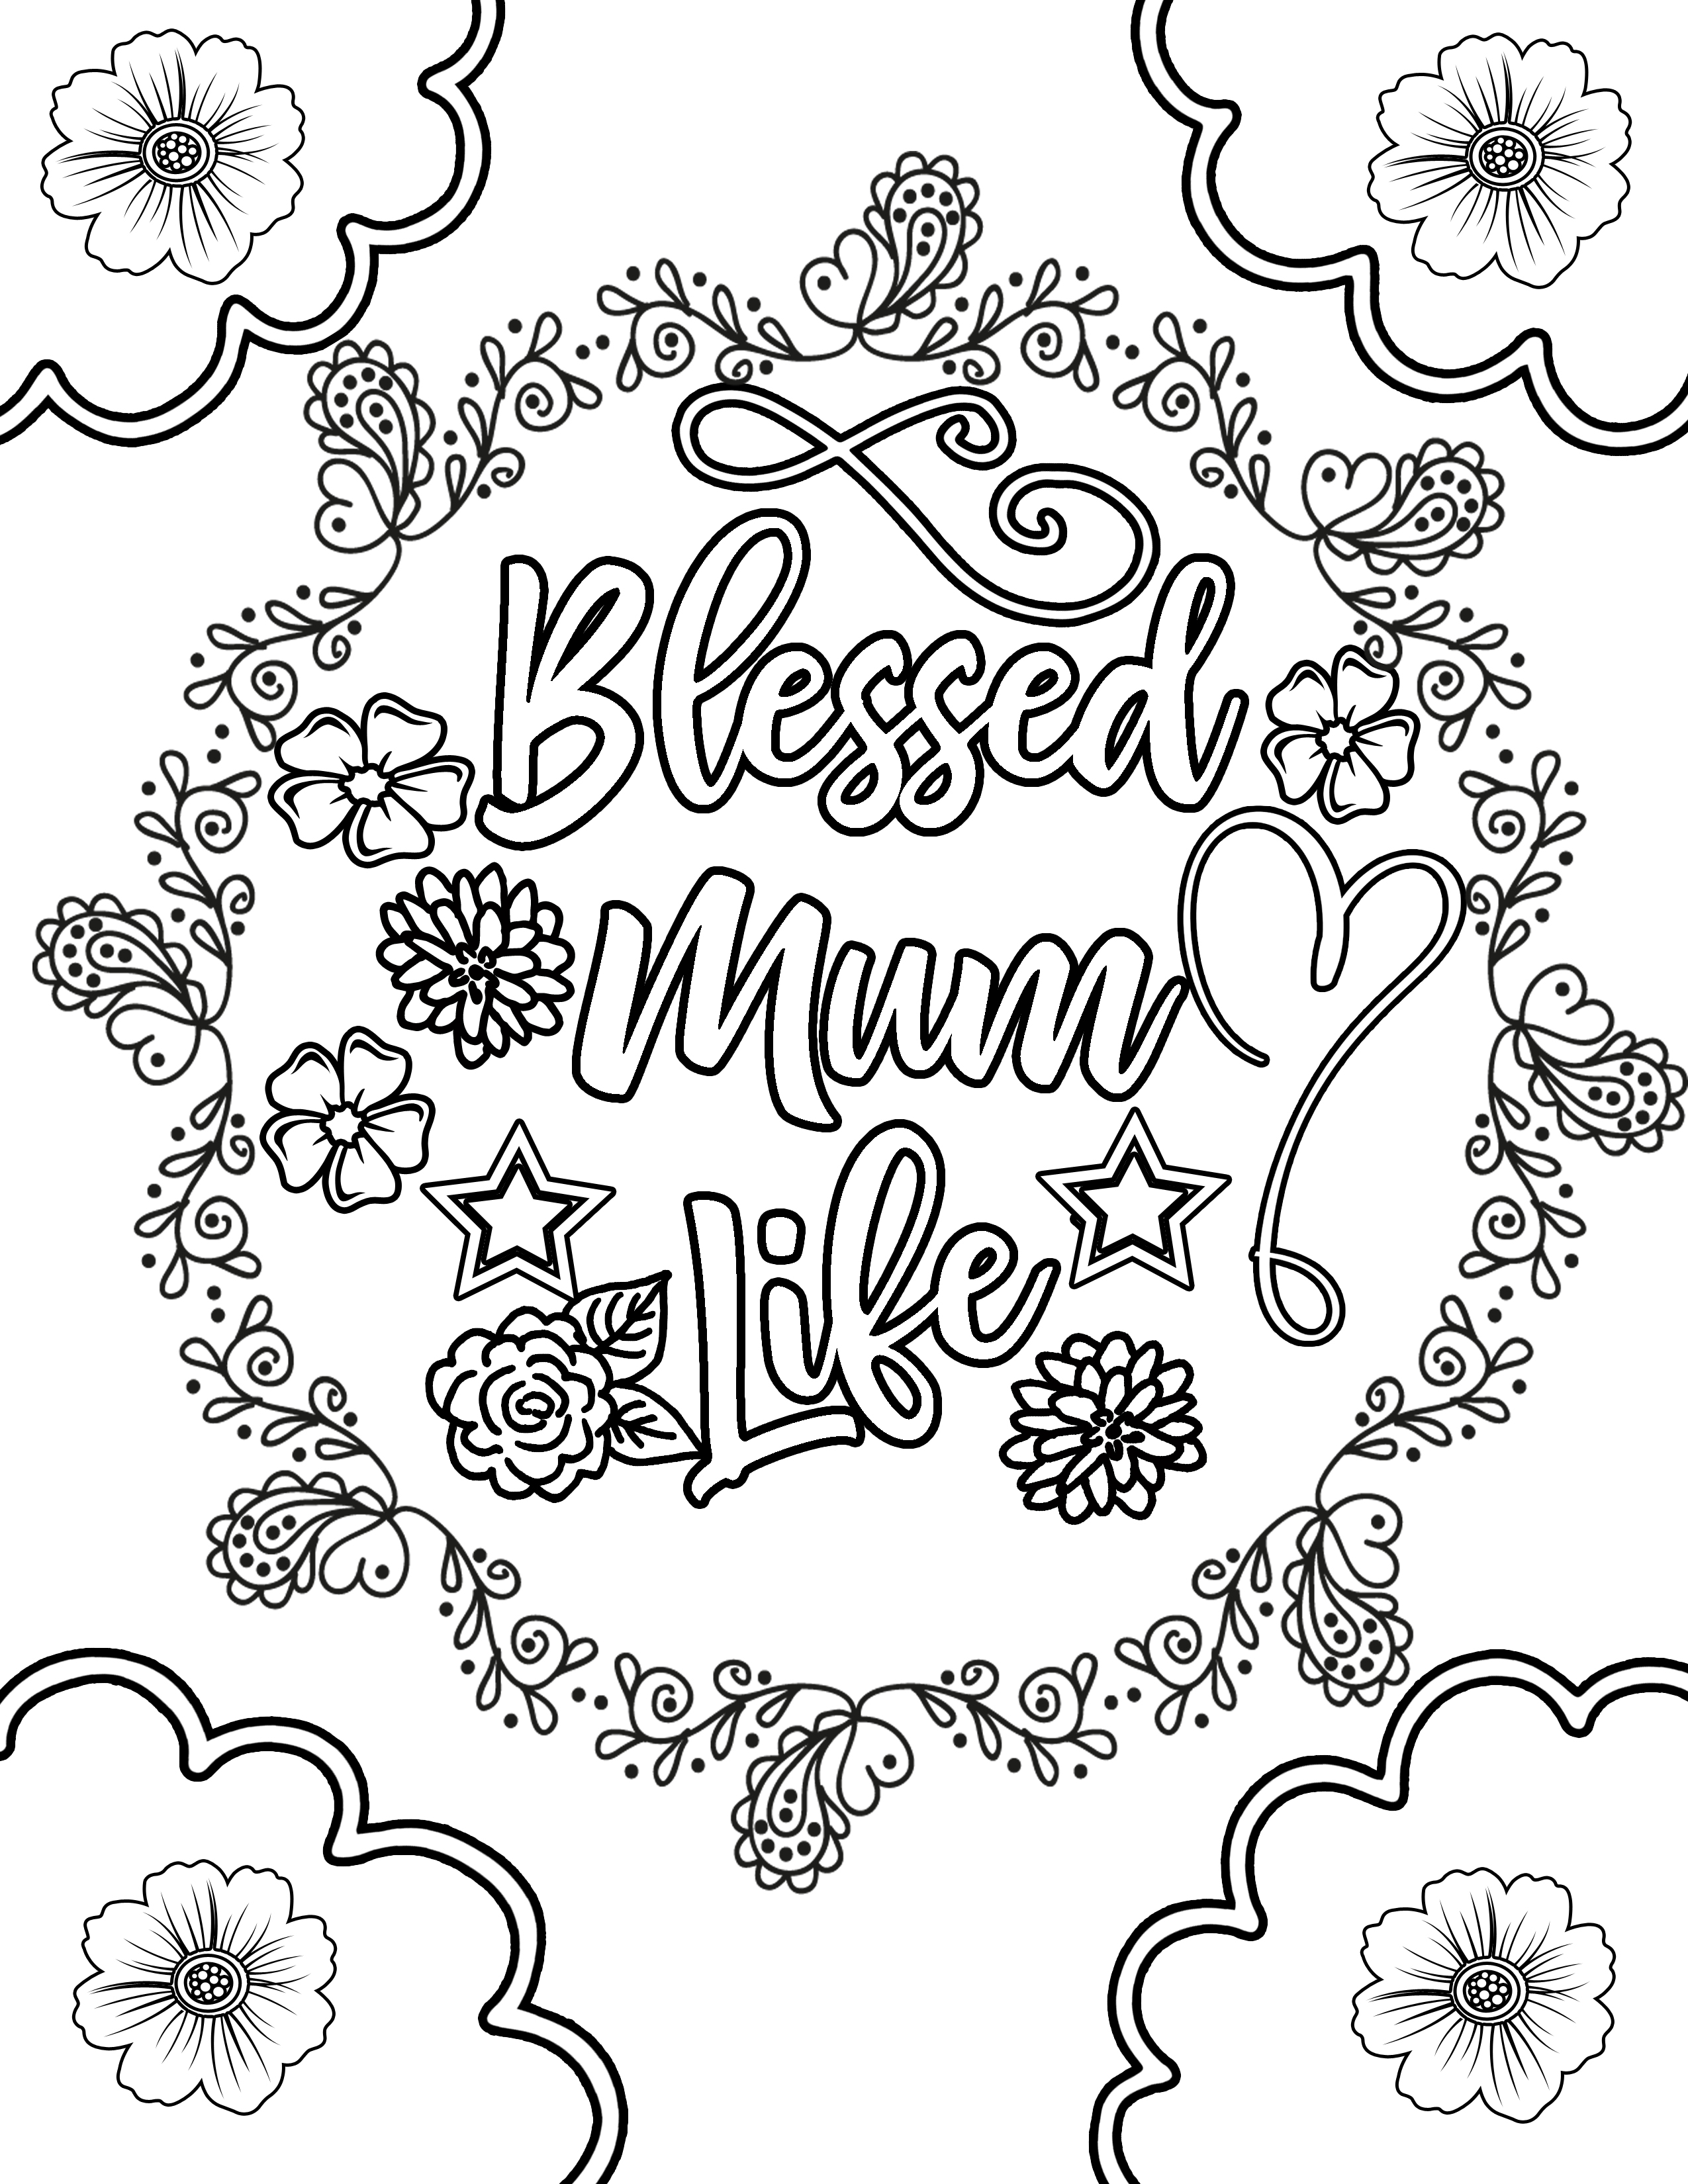 Blessed Mum Life MOTHER'S DAY flower with vines and frills Clipart Coloring Pages for Kids Adults Art Activities Line Art